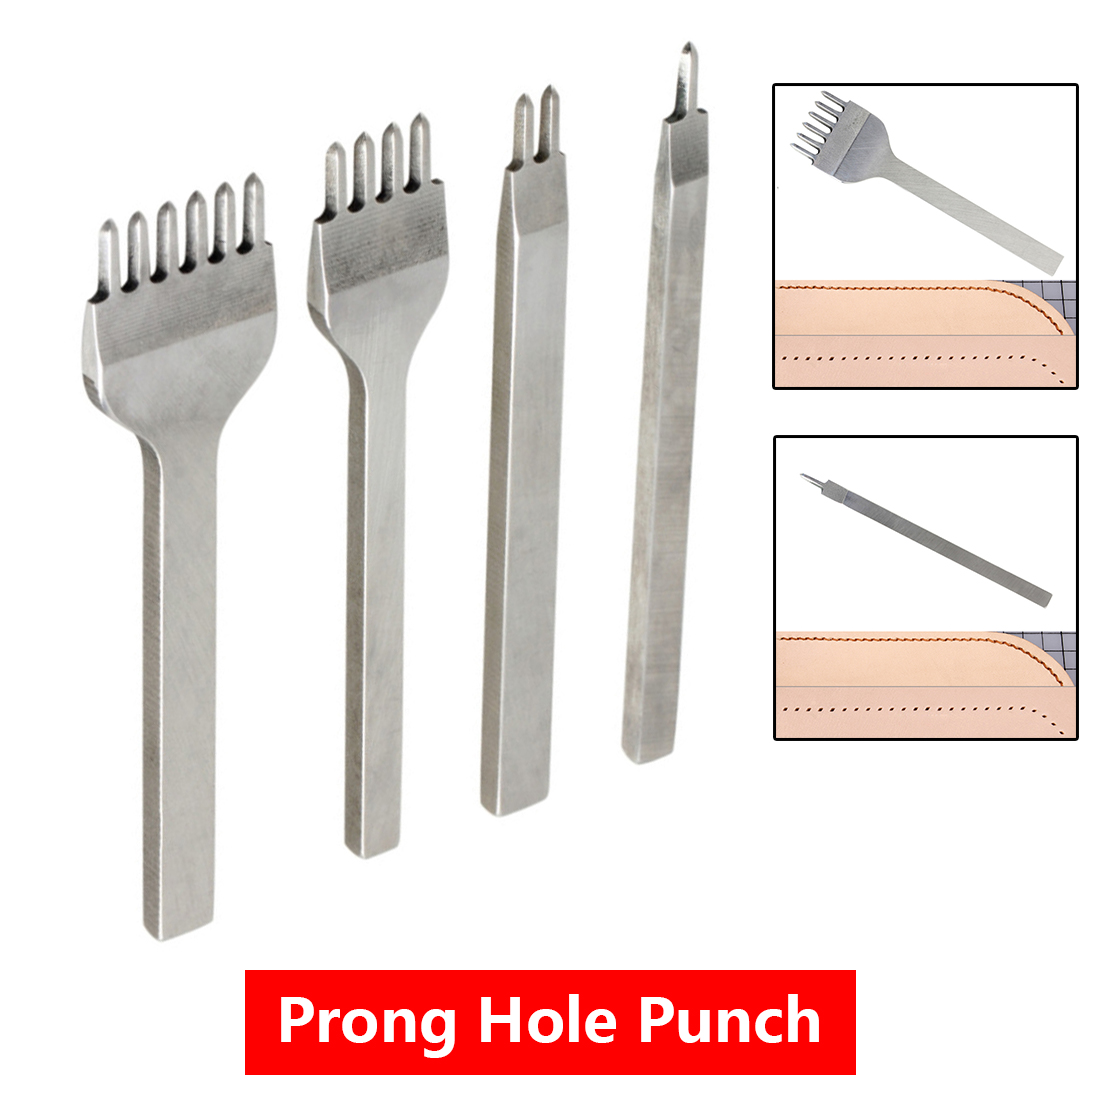 3mm Leather Craft Tool Hole Punches Lacing Stitching Punch 1/2/4/6 Prong For Home Sewing Handmade Leather Tool